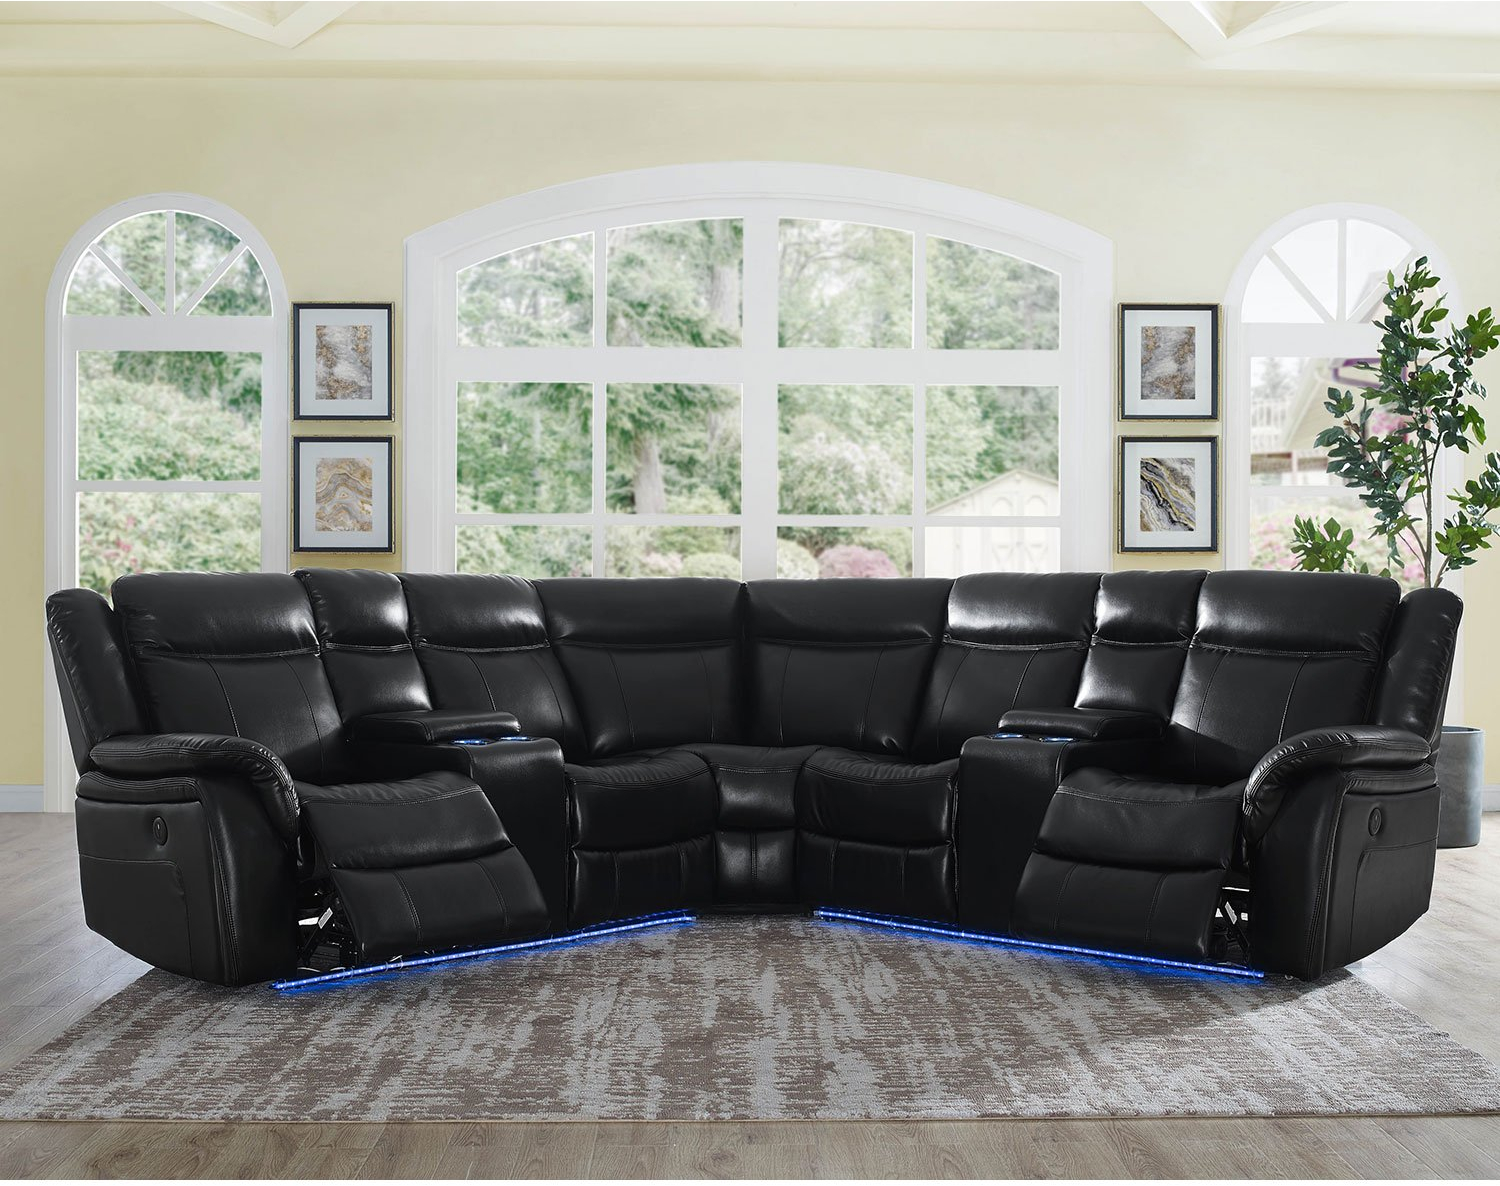 Details about Black Faux Leather Power Reclining Sectional Sofa Lights Cup  Holder USB Charging